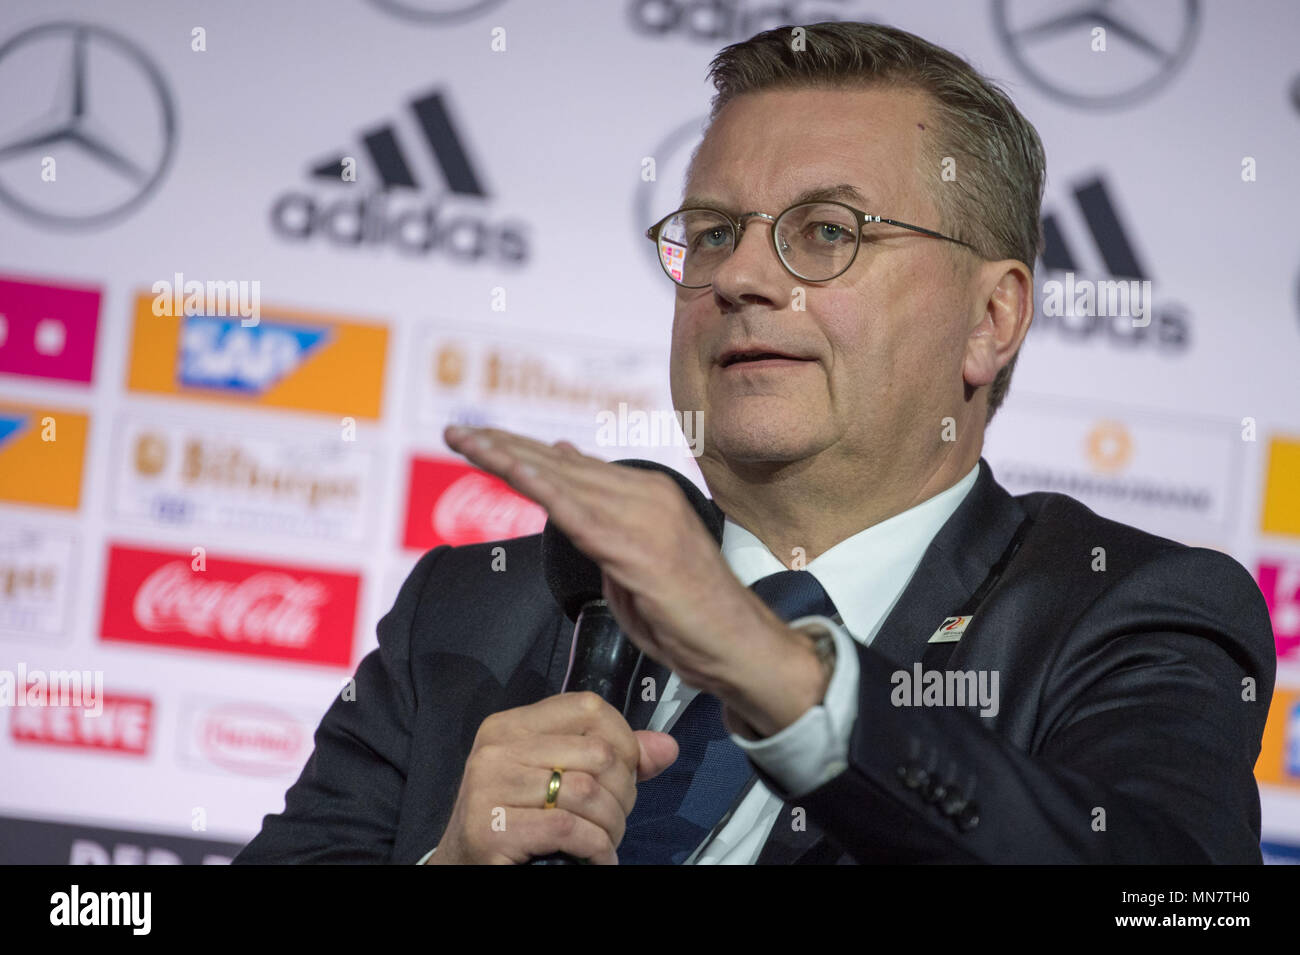 15 May 2018, Germany, Dortmund: soccer, World Cup, German national team, announcement of the preliminary World Cup squad of the German national team for the World Cup in Russia: President of the German Football Association (DFB), Reinhard Grindel, speaking during the press conference. Photo: Federico Gambarini/dpa Credit: dpa picture alliance/Alamy Live News - Stock Image